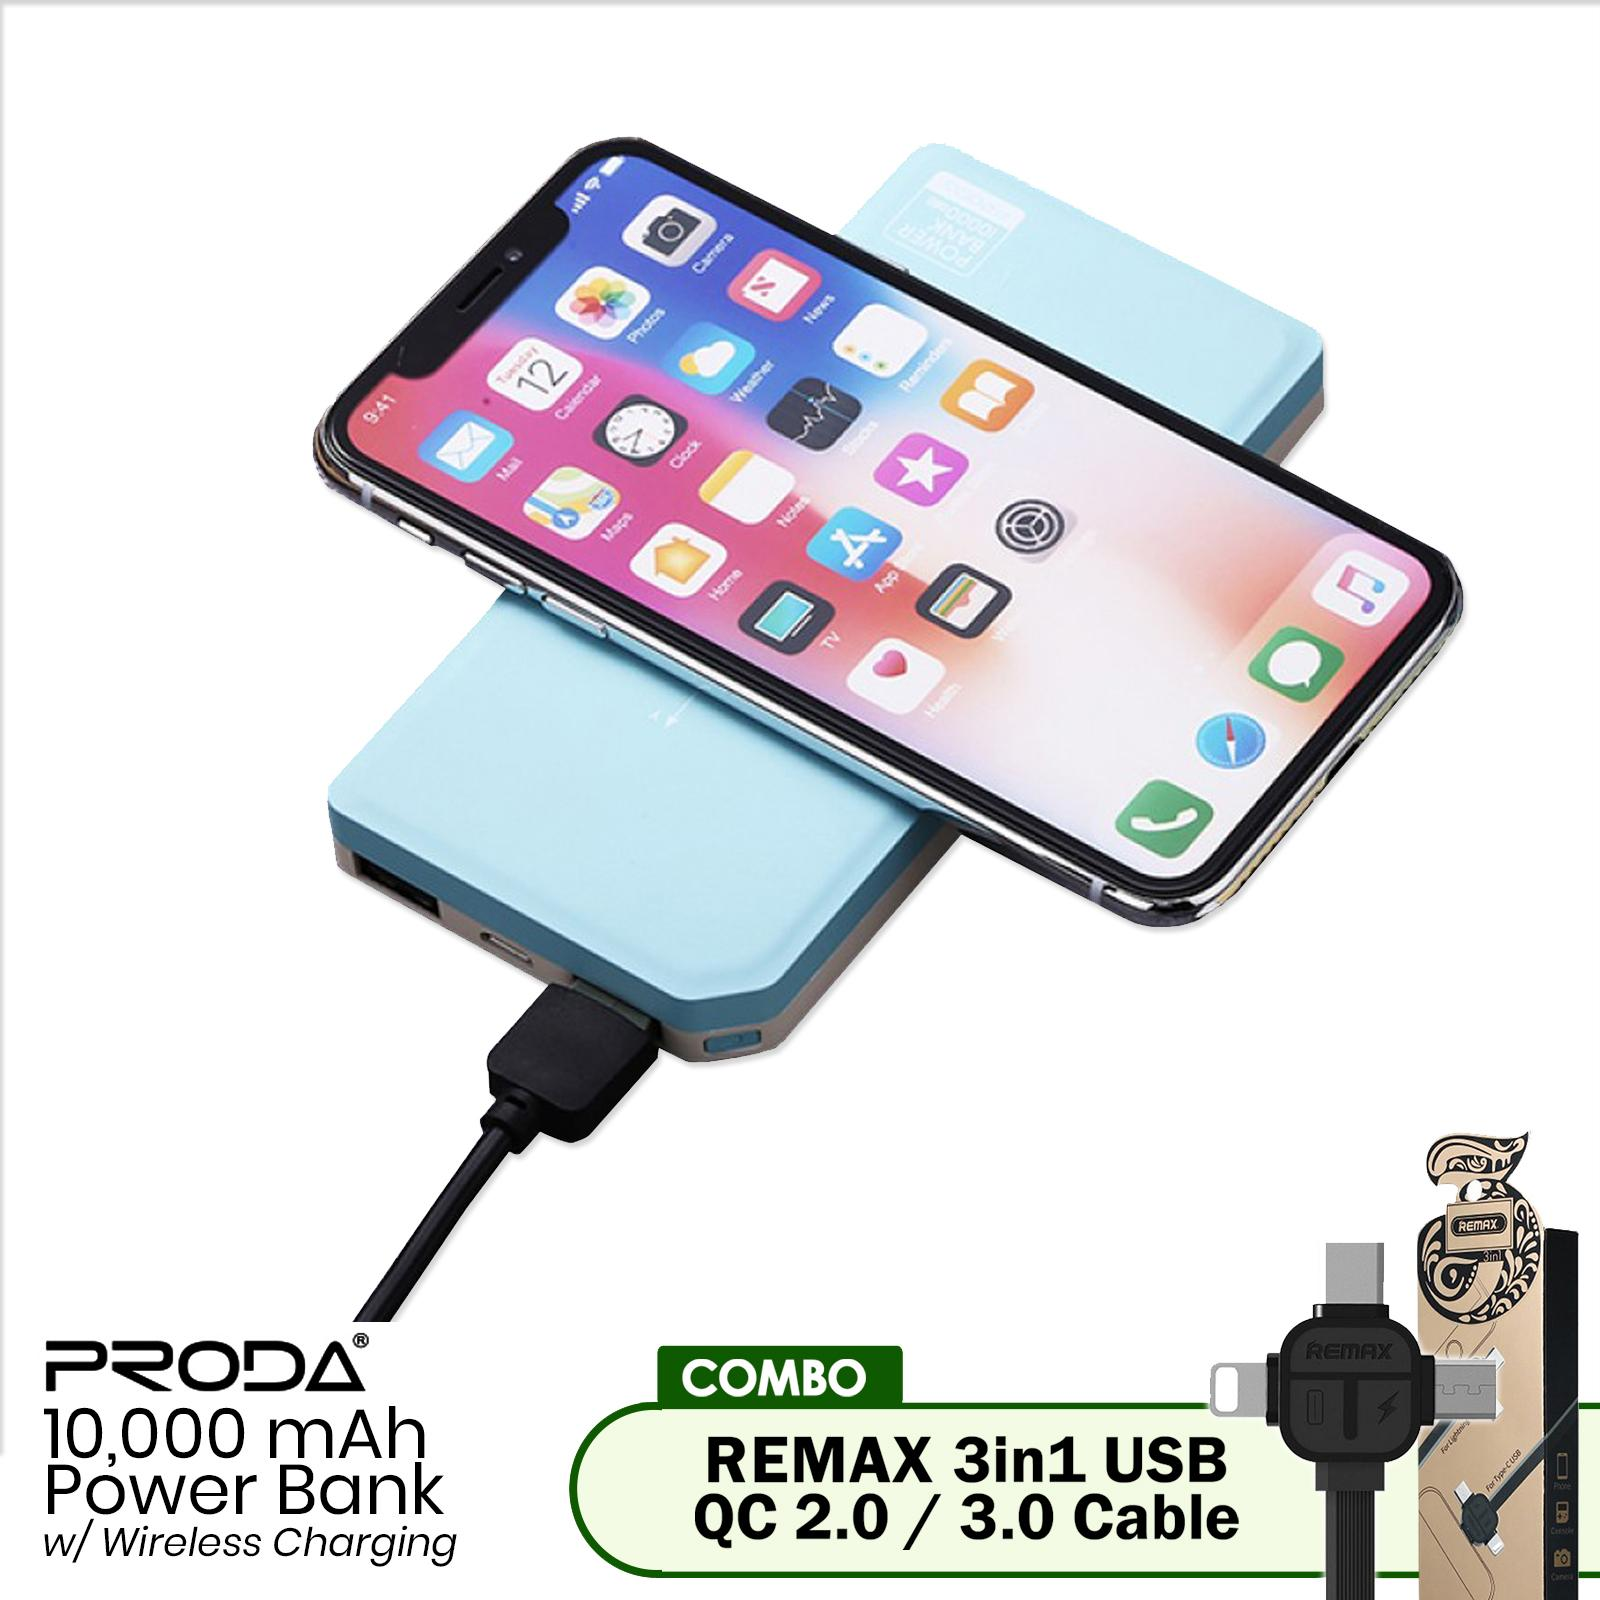 Remax Proda Rp L1 Tiger Charger With Lightning Cable White Usb 10000mah Wireless Charging Powerbank W 3in1